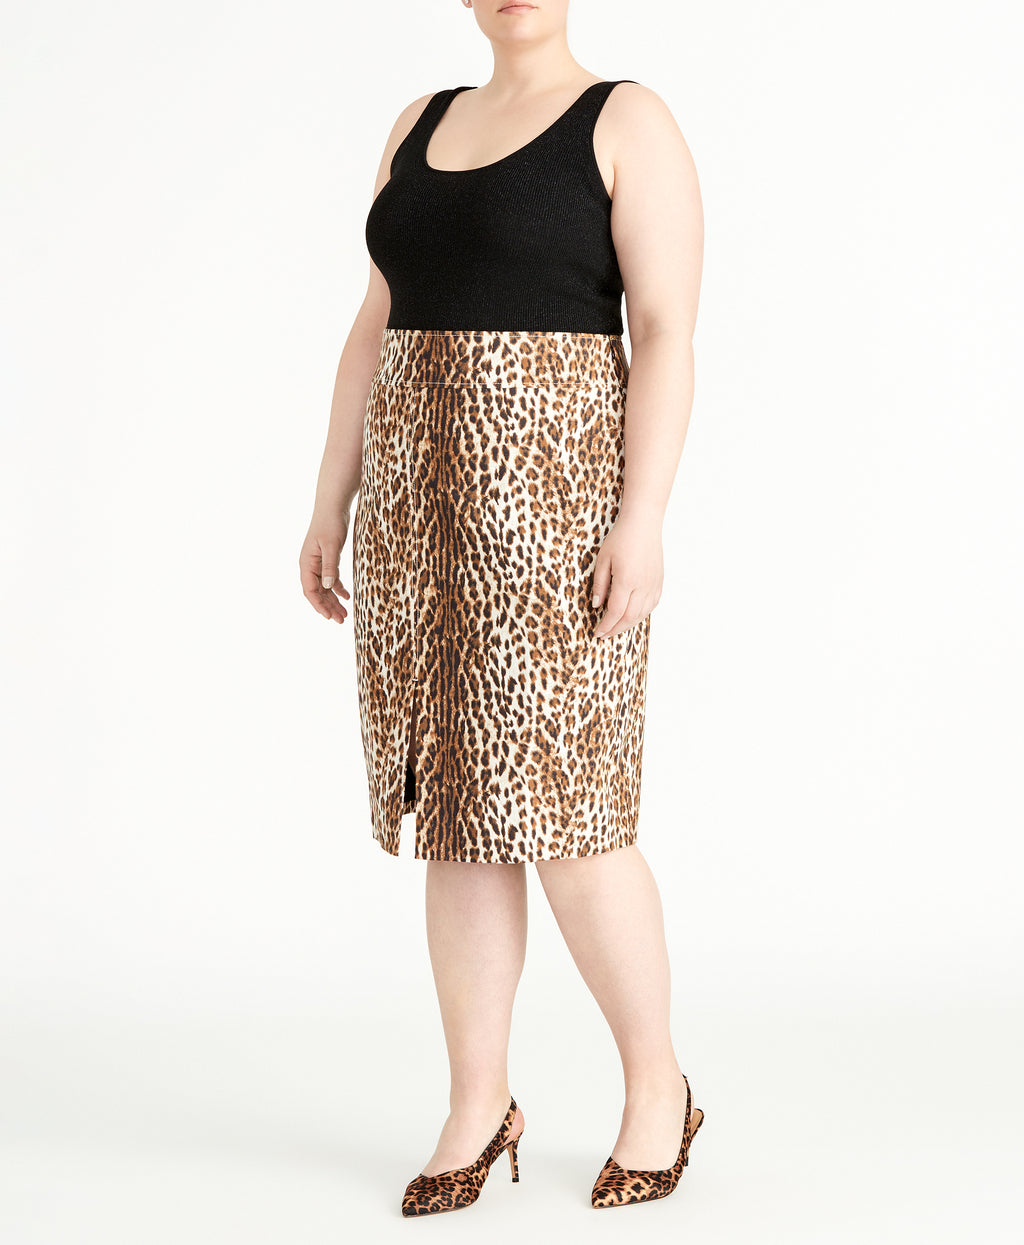 Leopard Pencil Skirt | Leopard Pencil Skirt